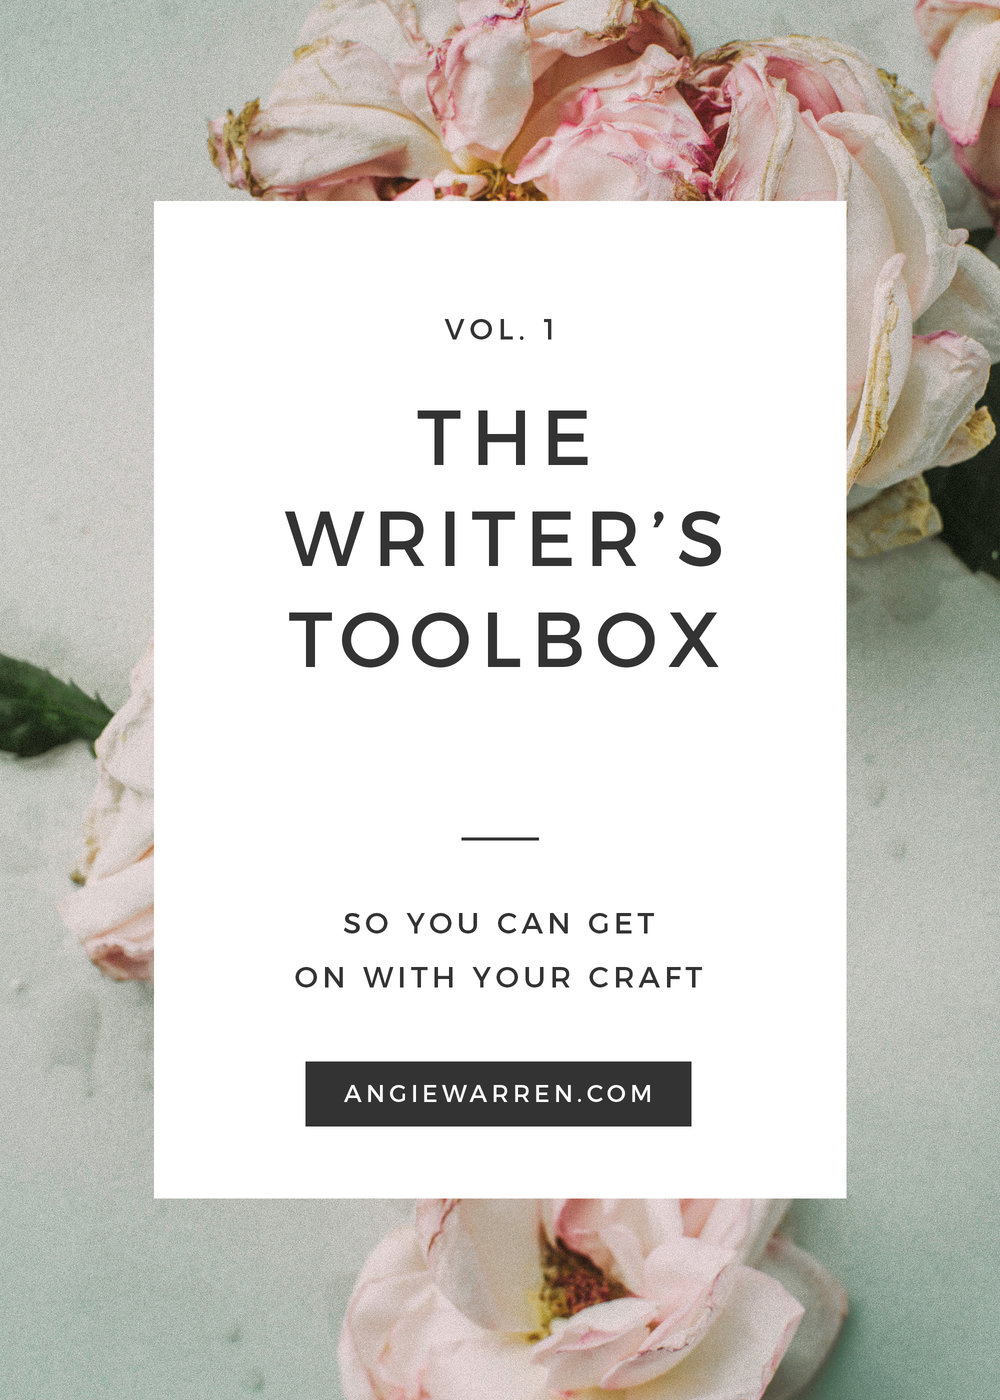 ANGIE WARREN // The Writer's Toolbox Vol. 1